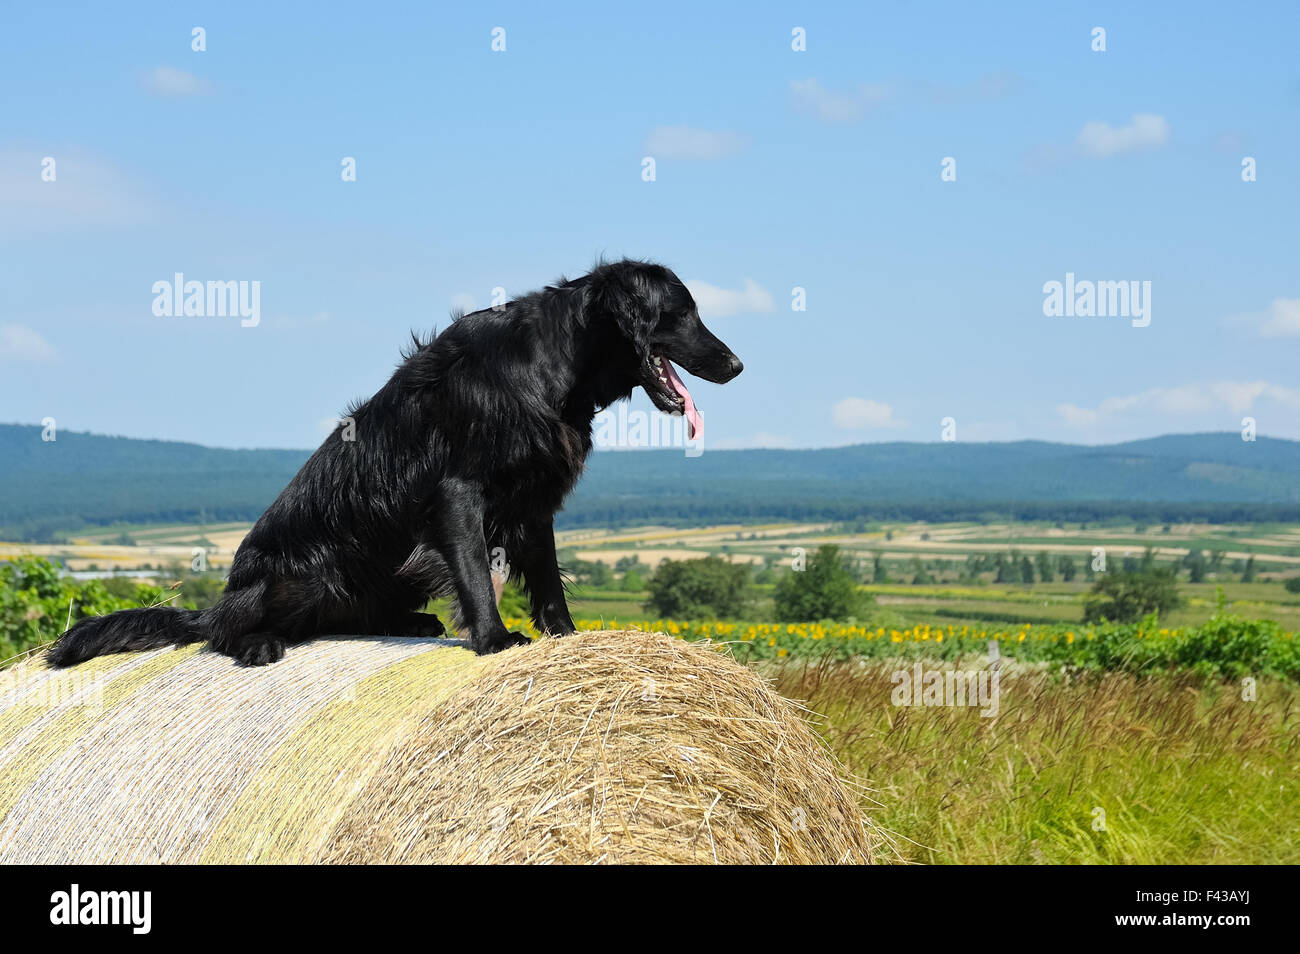 Sitting On A Hay Bale Stock Photos & Sitting On A Hay Bale Stock